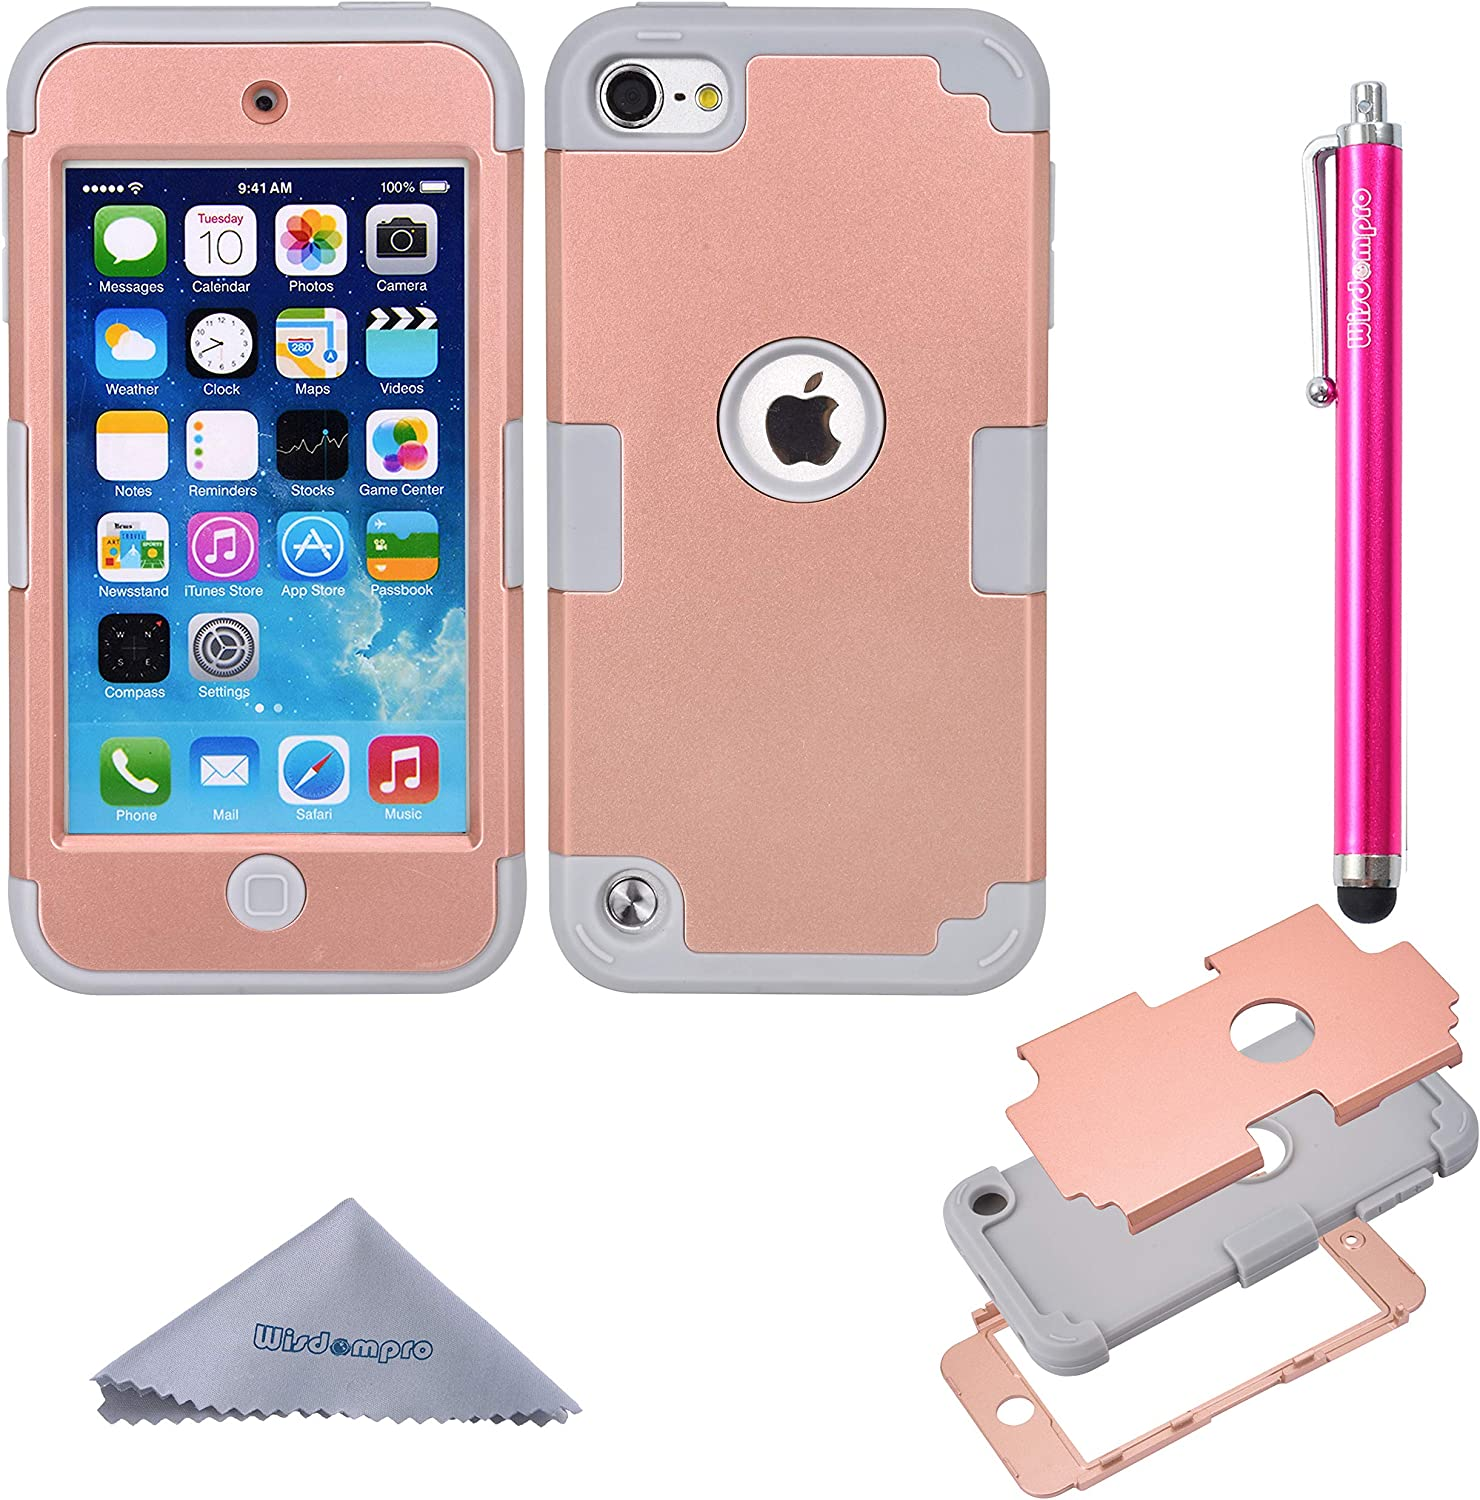 iPod Touch 7 Case, iPod Touch 6 Case, iPod Touch 5 Case, Wisdompro 3 in 1 Hybrid Soft Silicone and Hard PC Protective Cover for Apple iPod Touch 5th, 6th and 7th Generation - Grey and Rose Gold